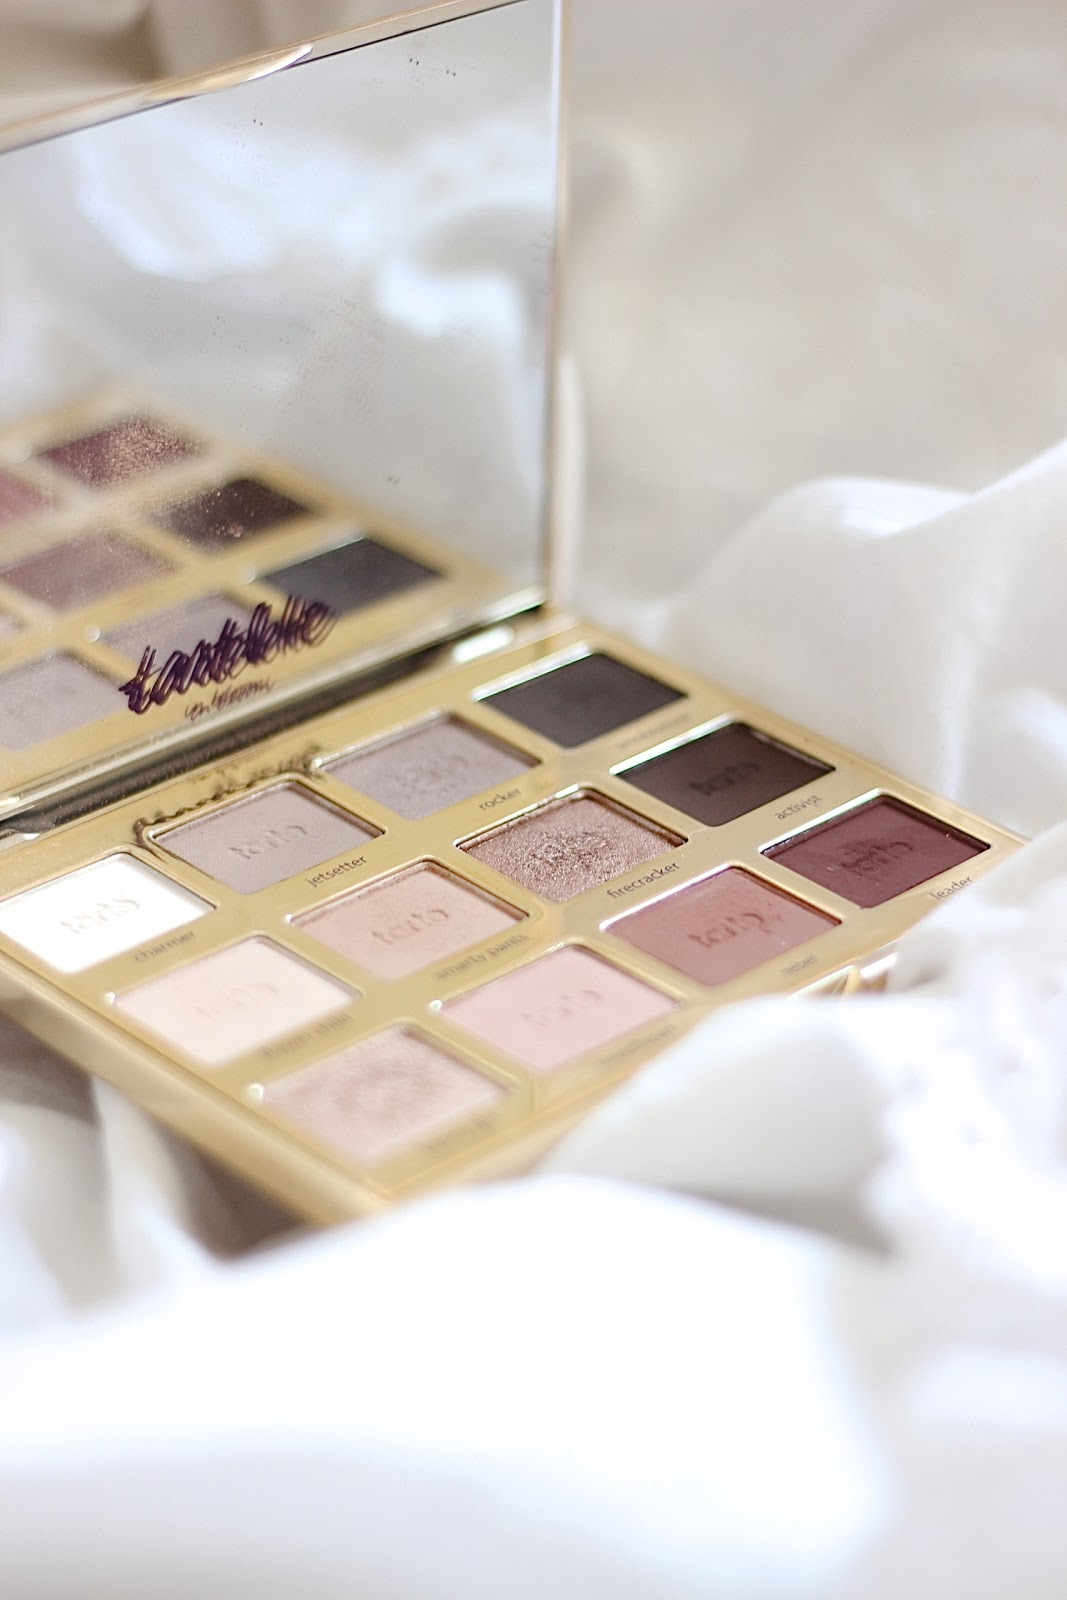 Tarte In Bloom Palette.